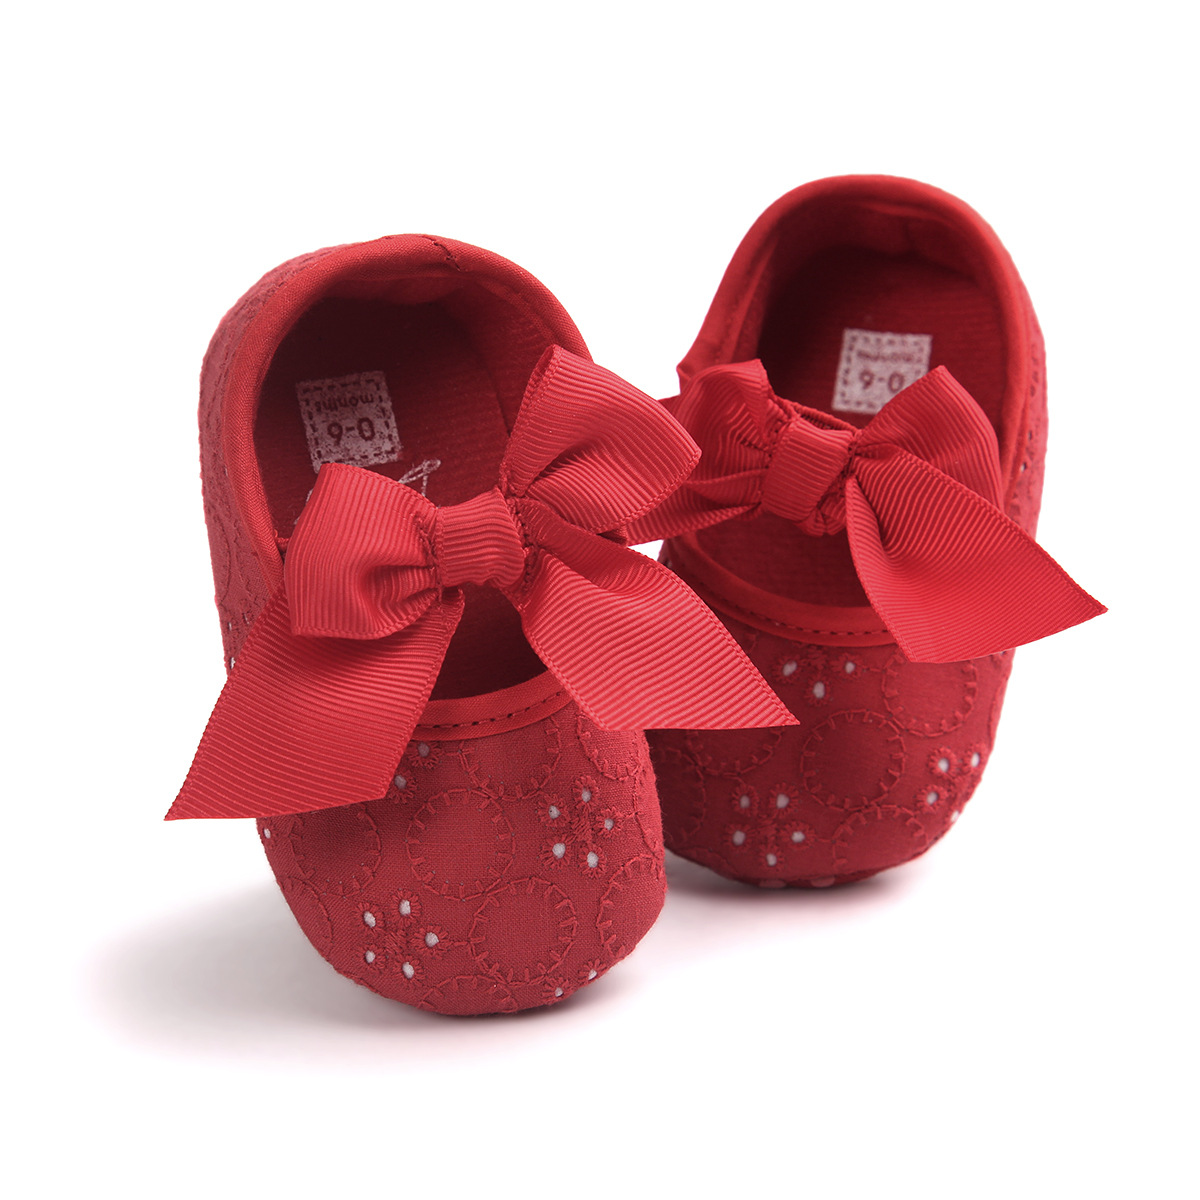 B&G  Girl Embroidered Bow Princess Walking Shoes Anti-slip Baby Floral Toddler Shoes Soft Cotton First Walkers